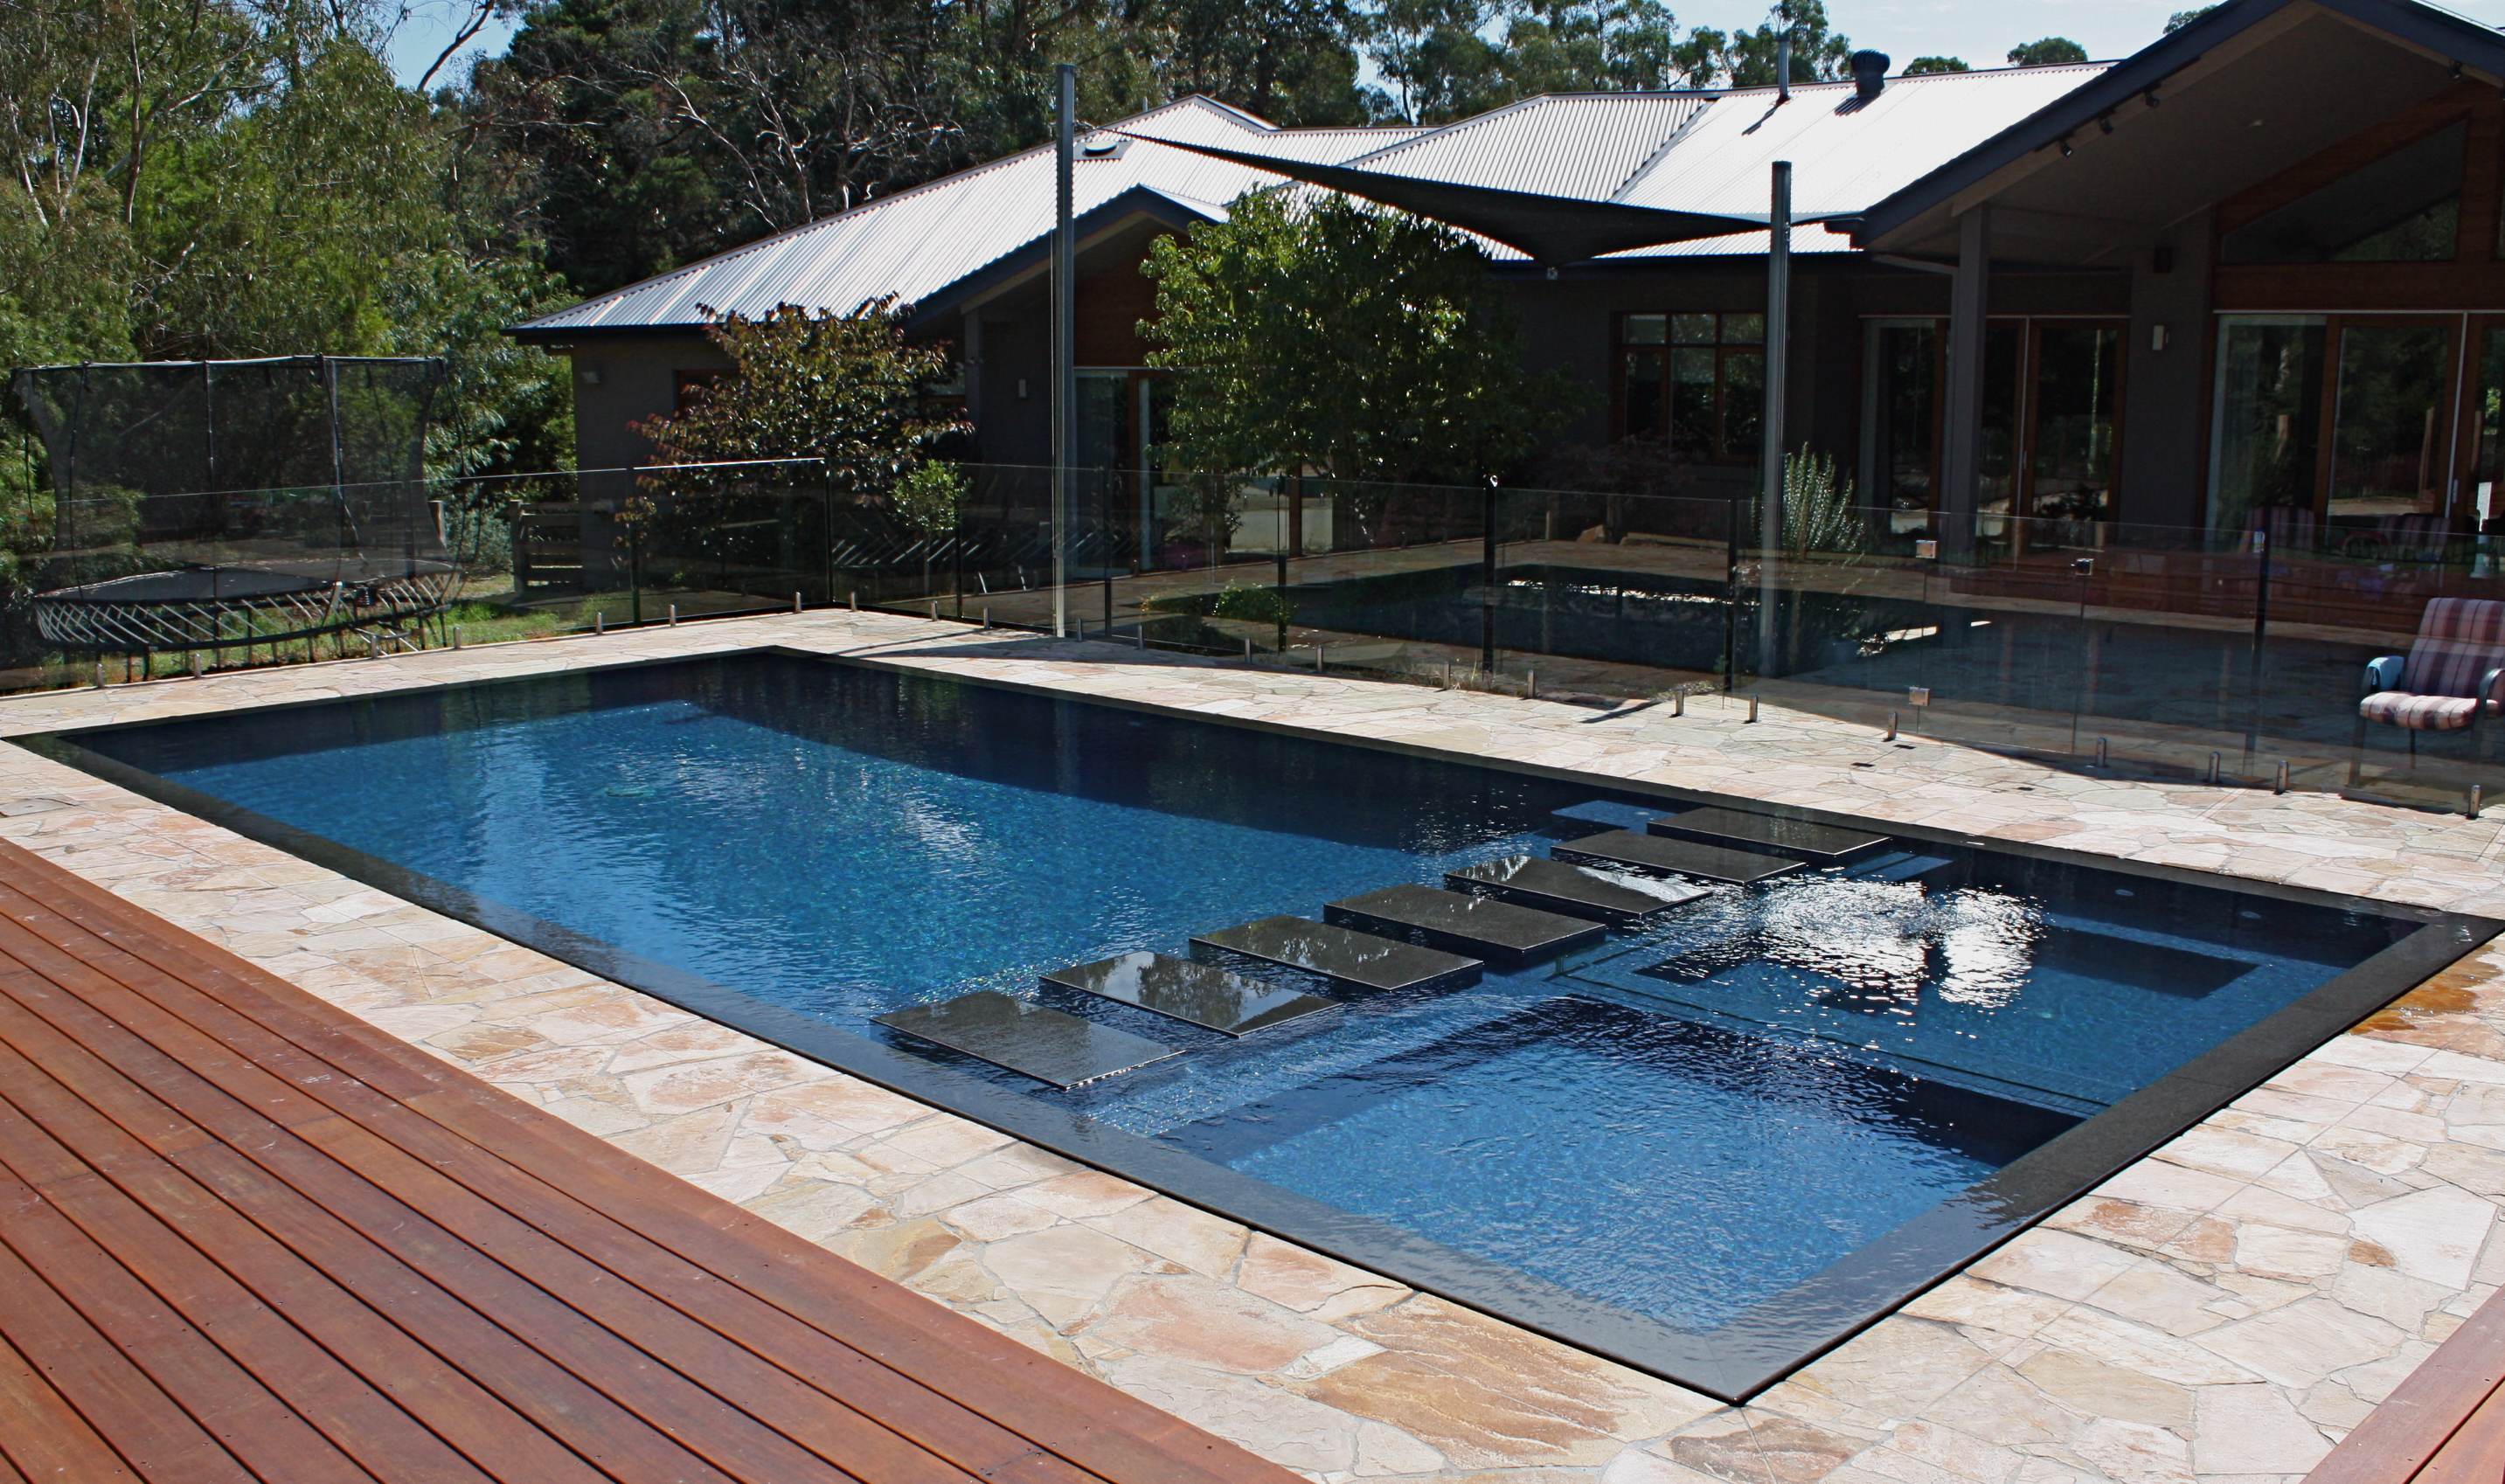 Minke pools melbourne concrete swimming pool design and for Pool design and construction